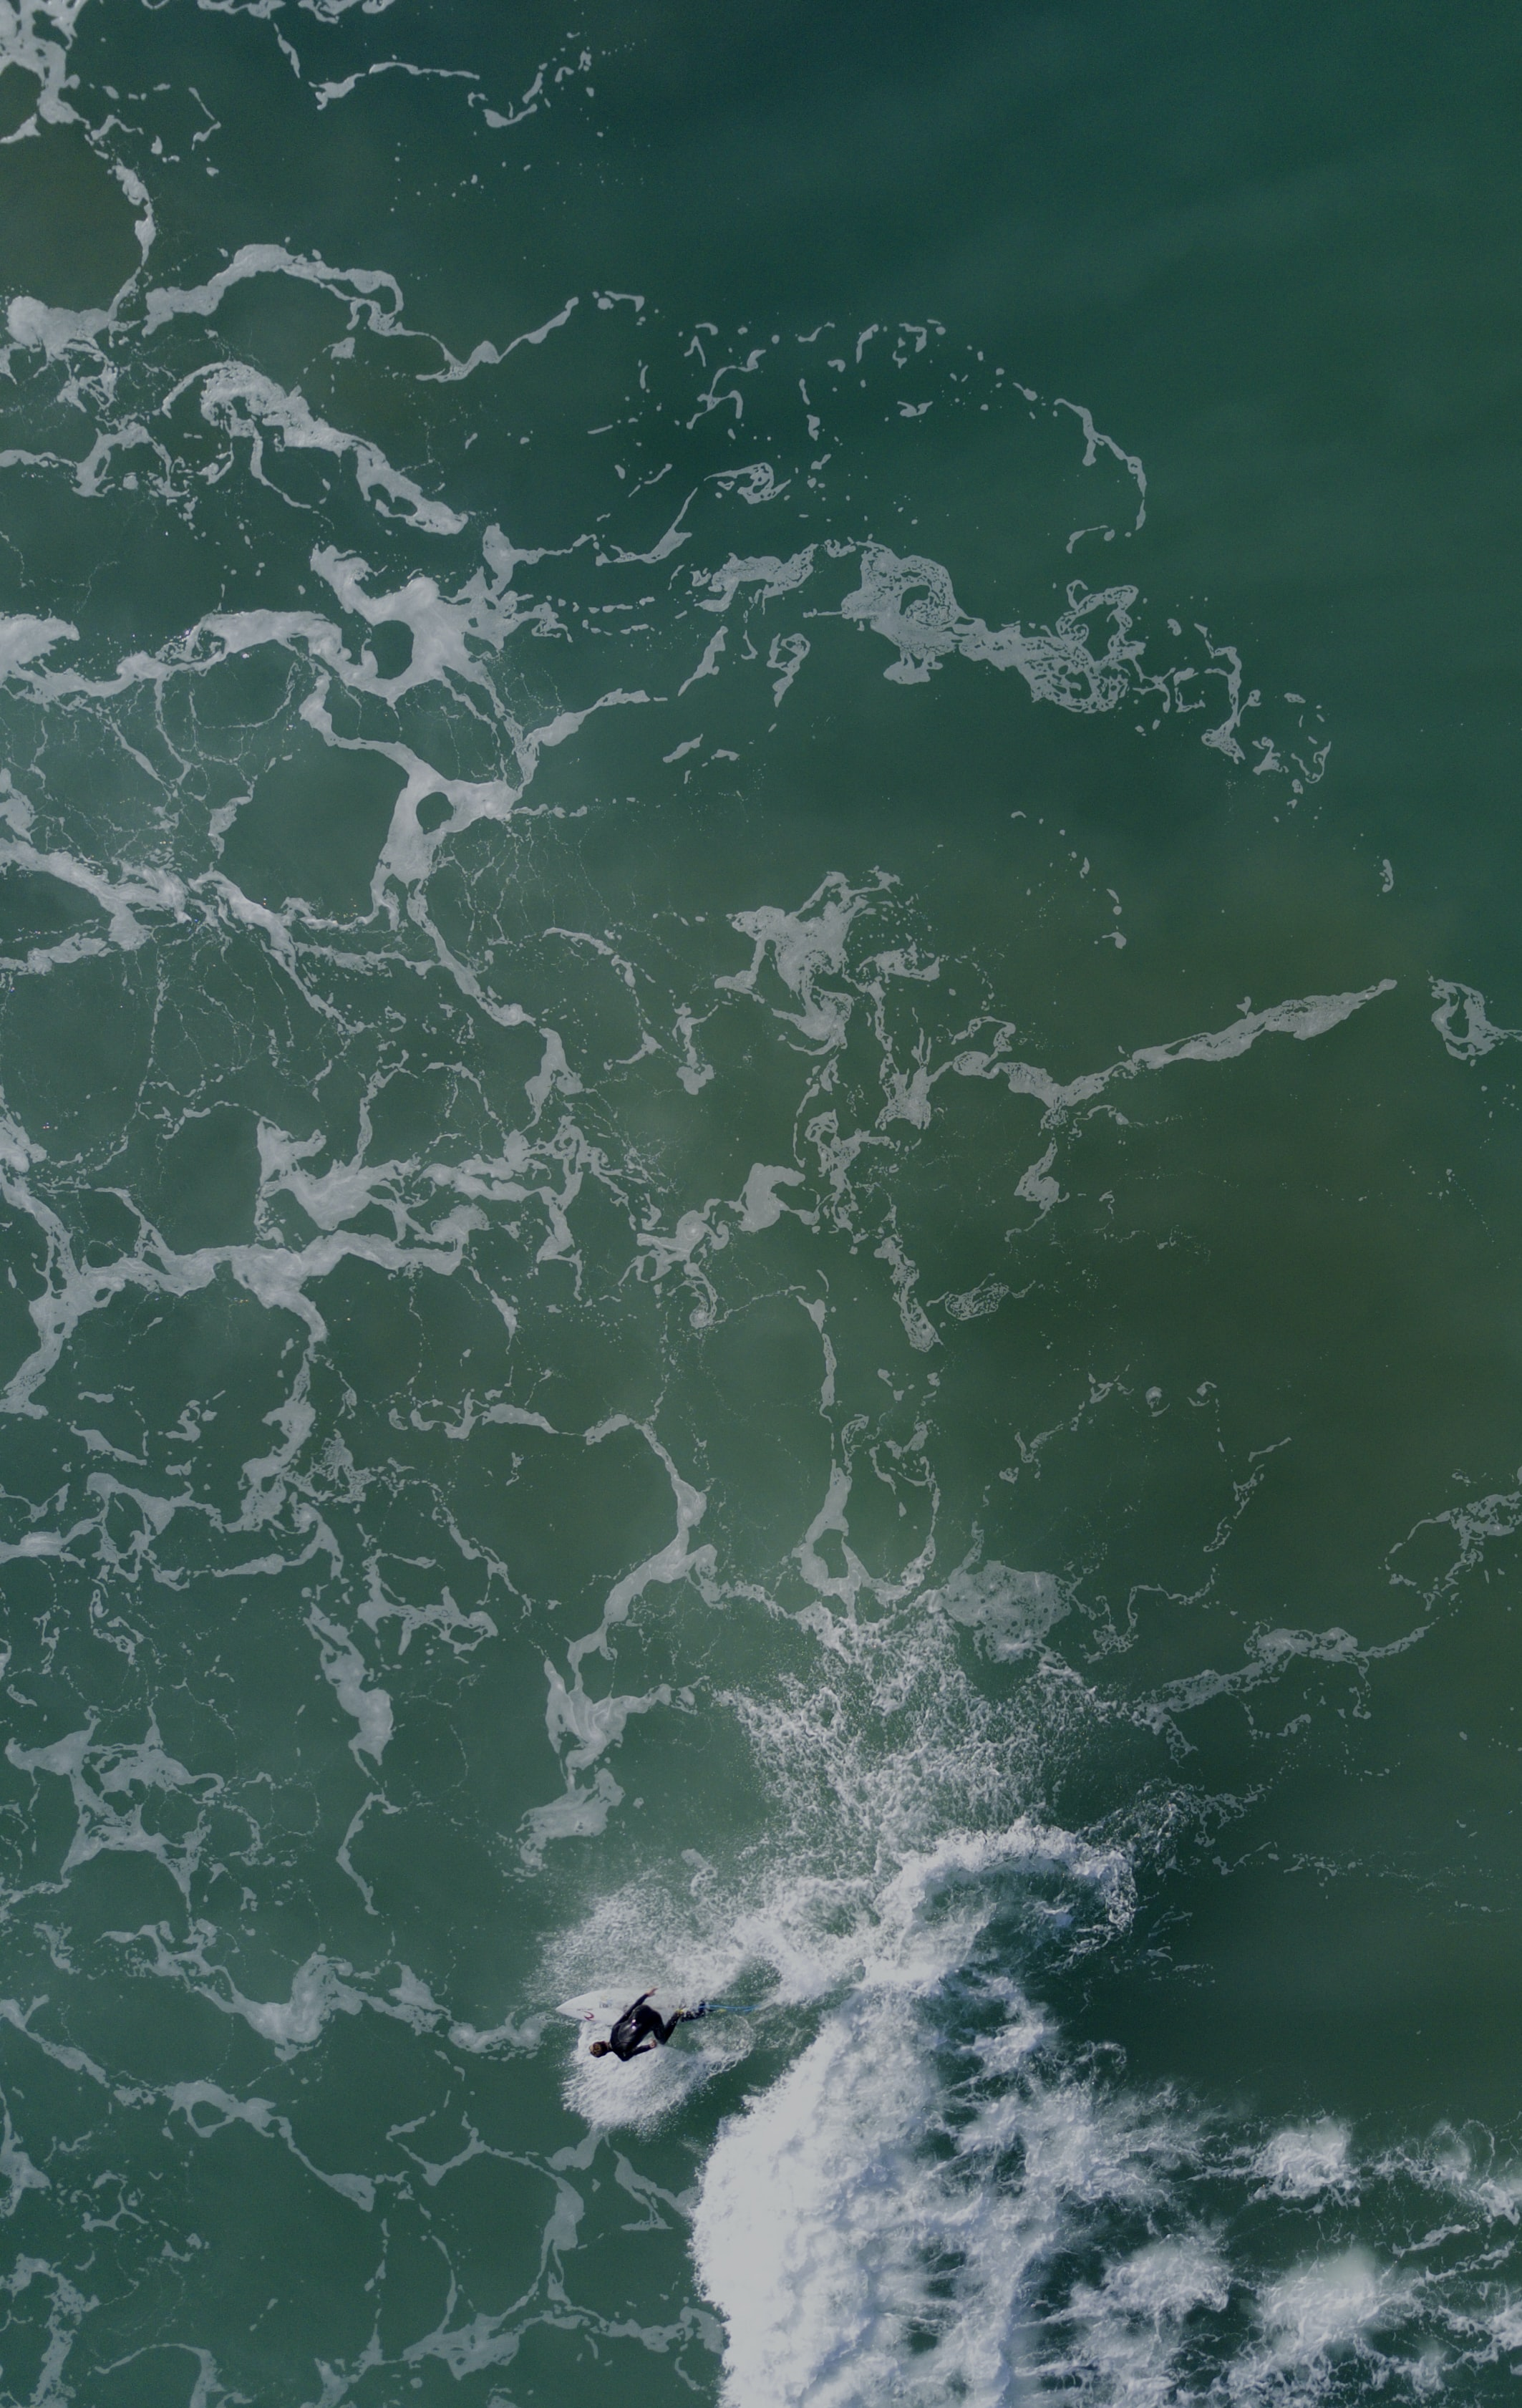 An overhead drone shot of a man in a wetsuit, riding a surfboard in the sea at Gisborne, New Zealand